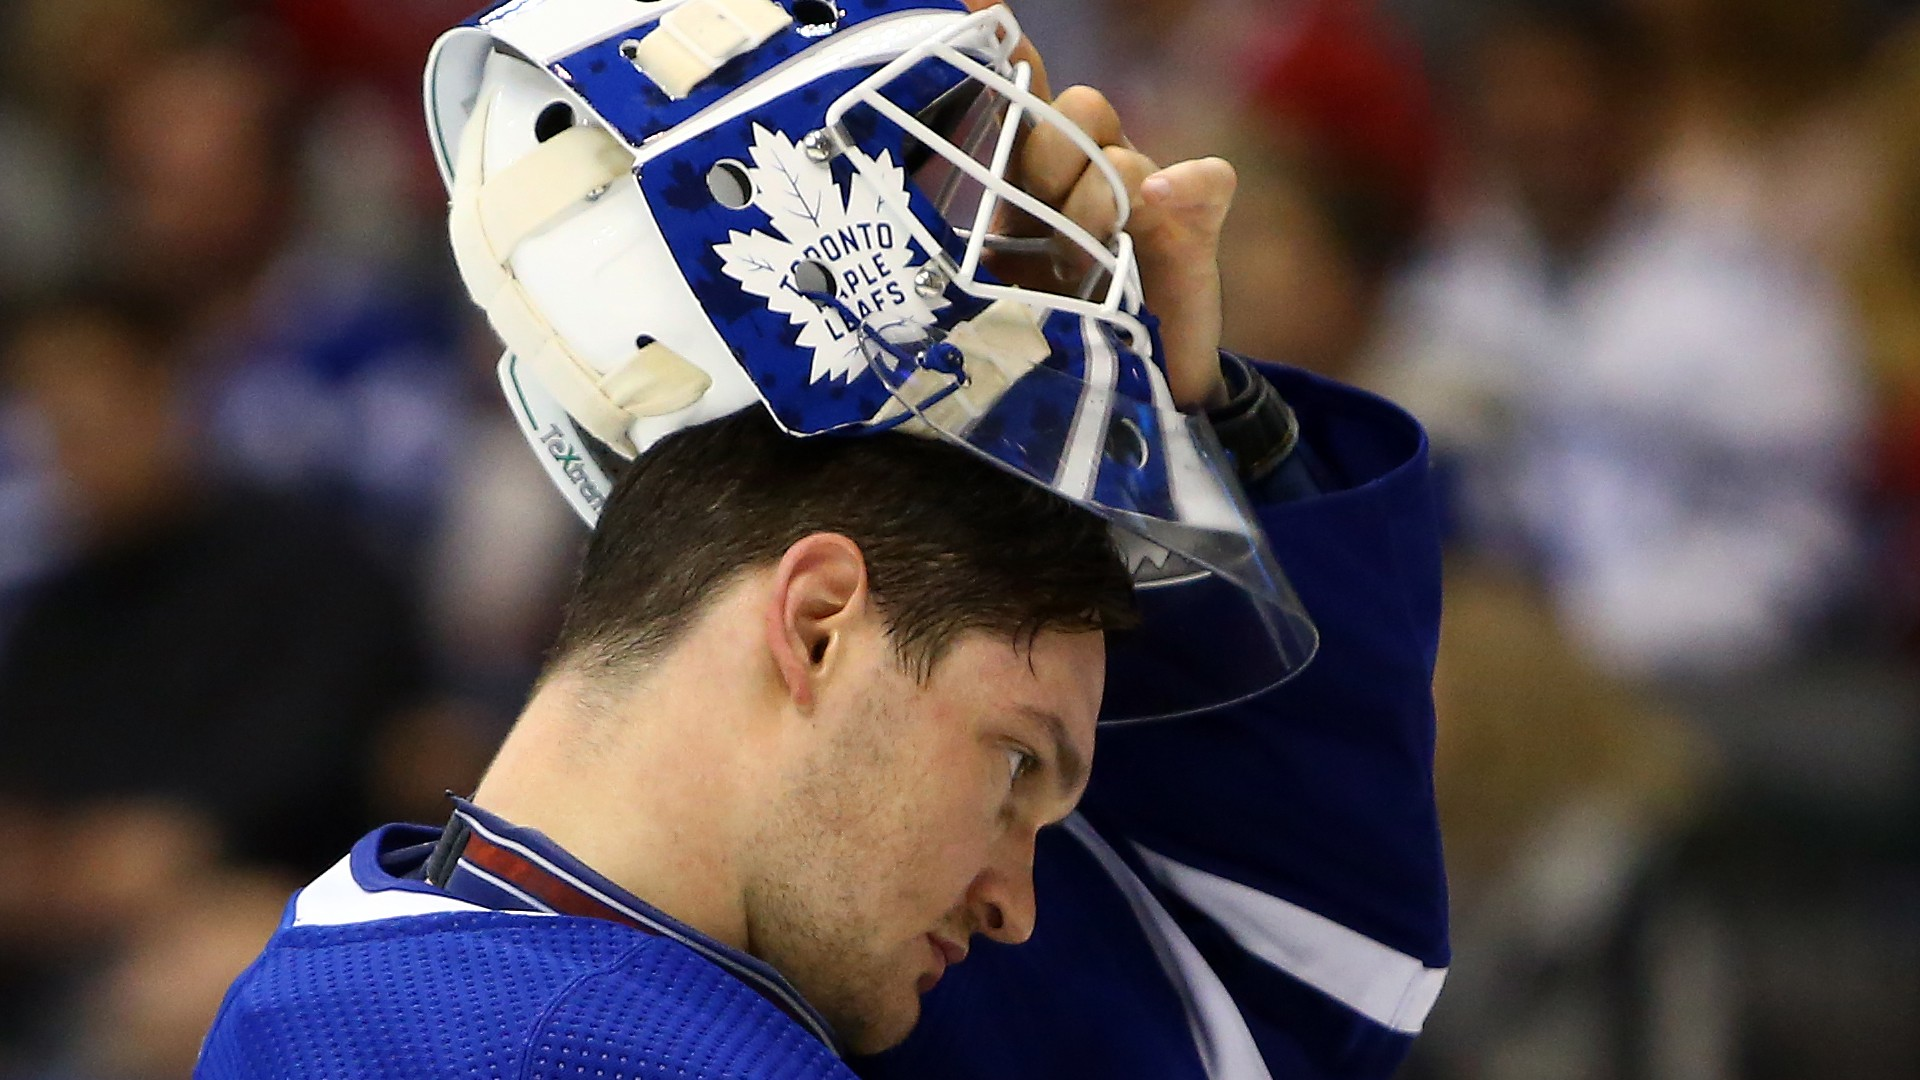 Toronto Maple Leafs allow three goals in 78 seconds in loss to Capitals